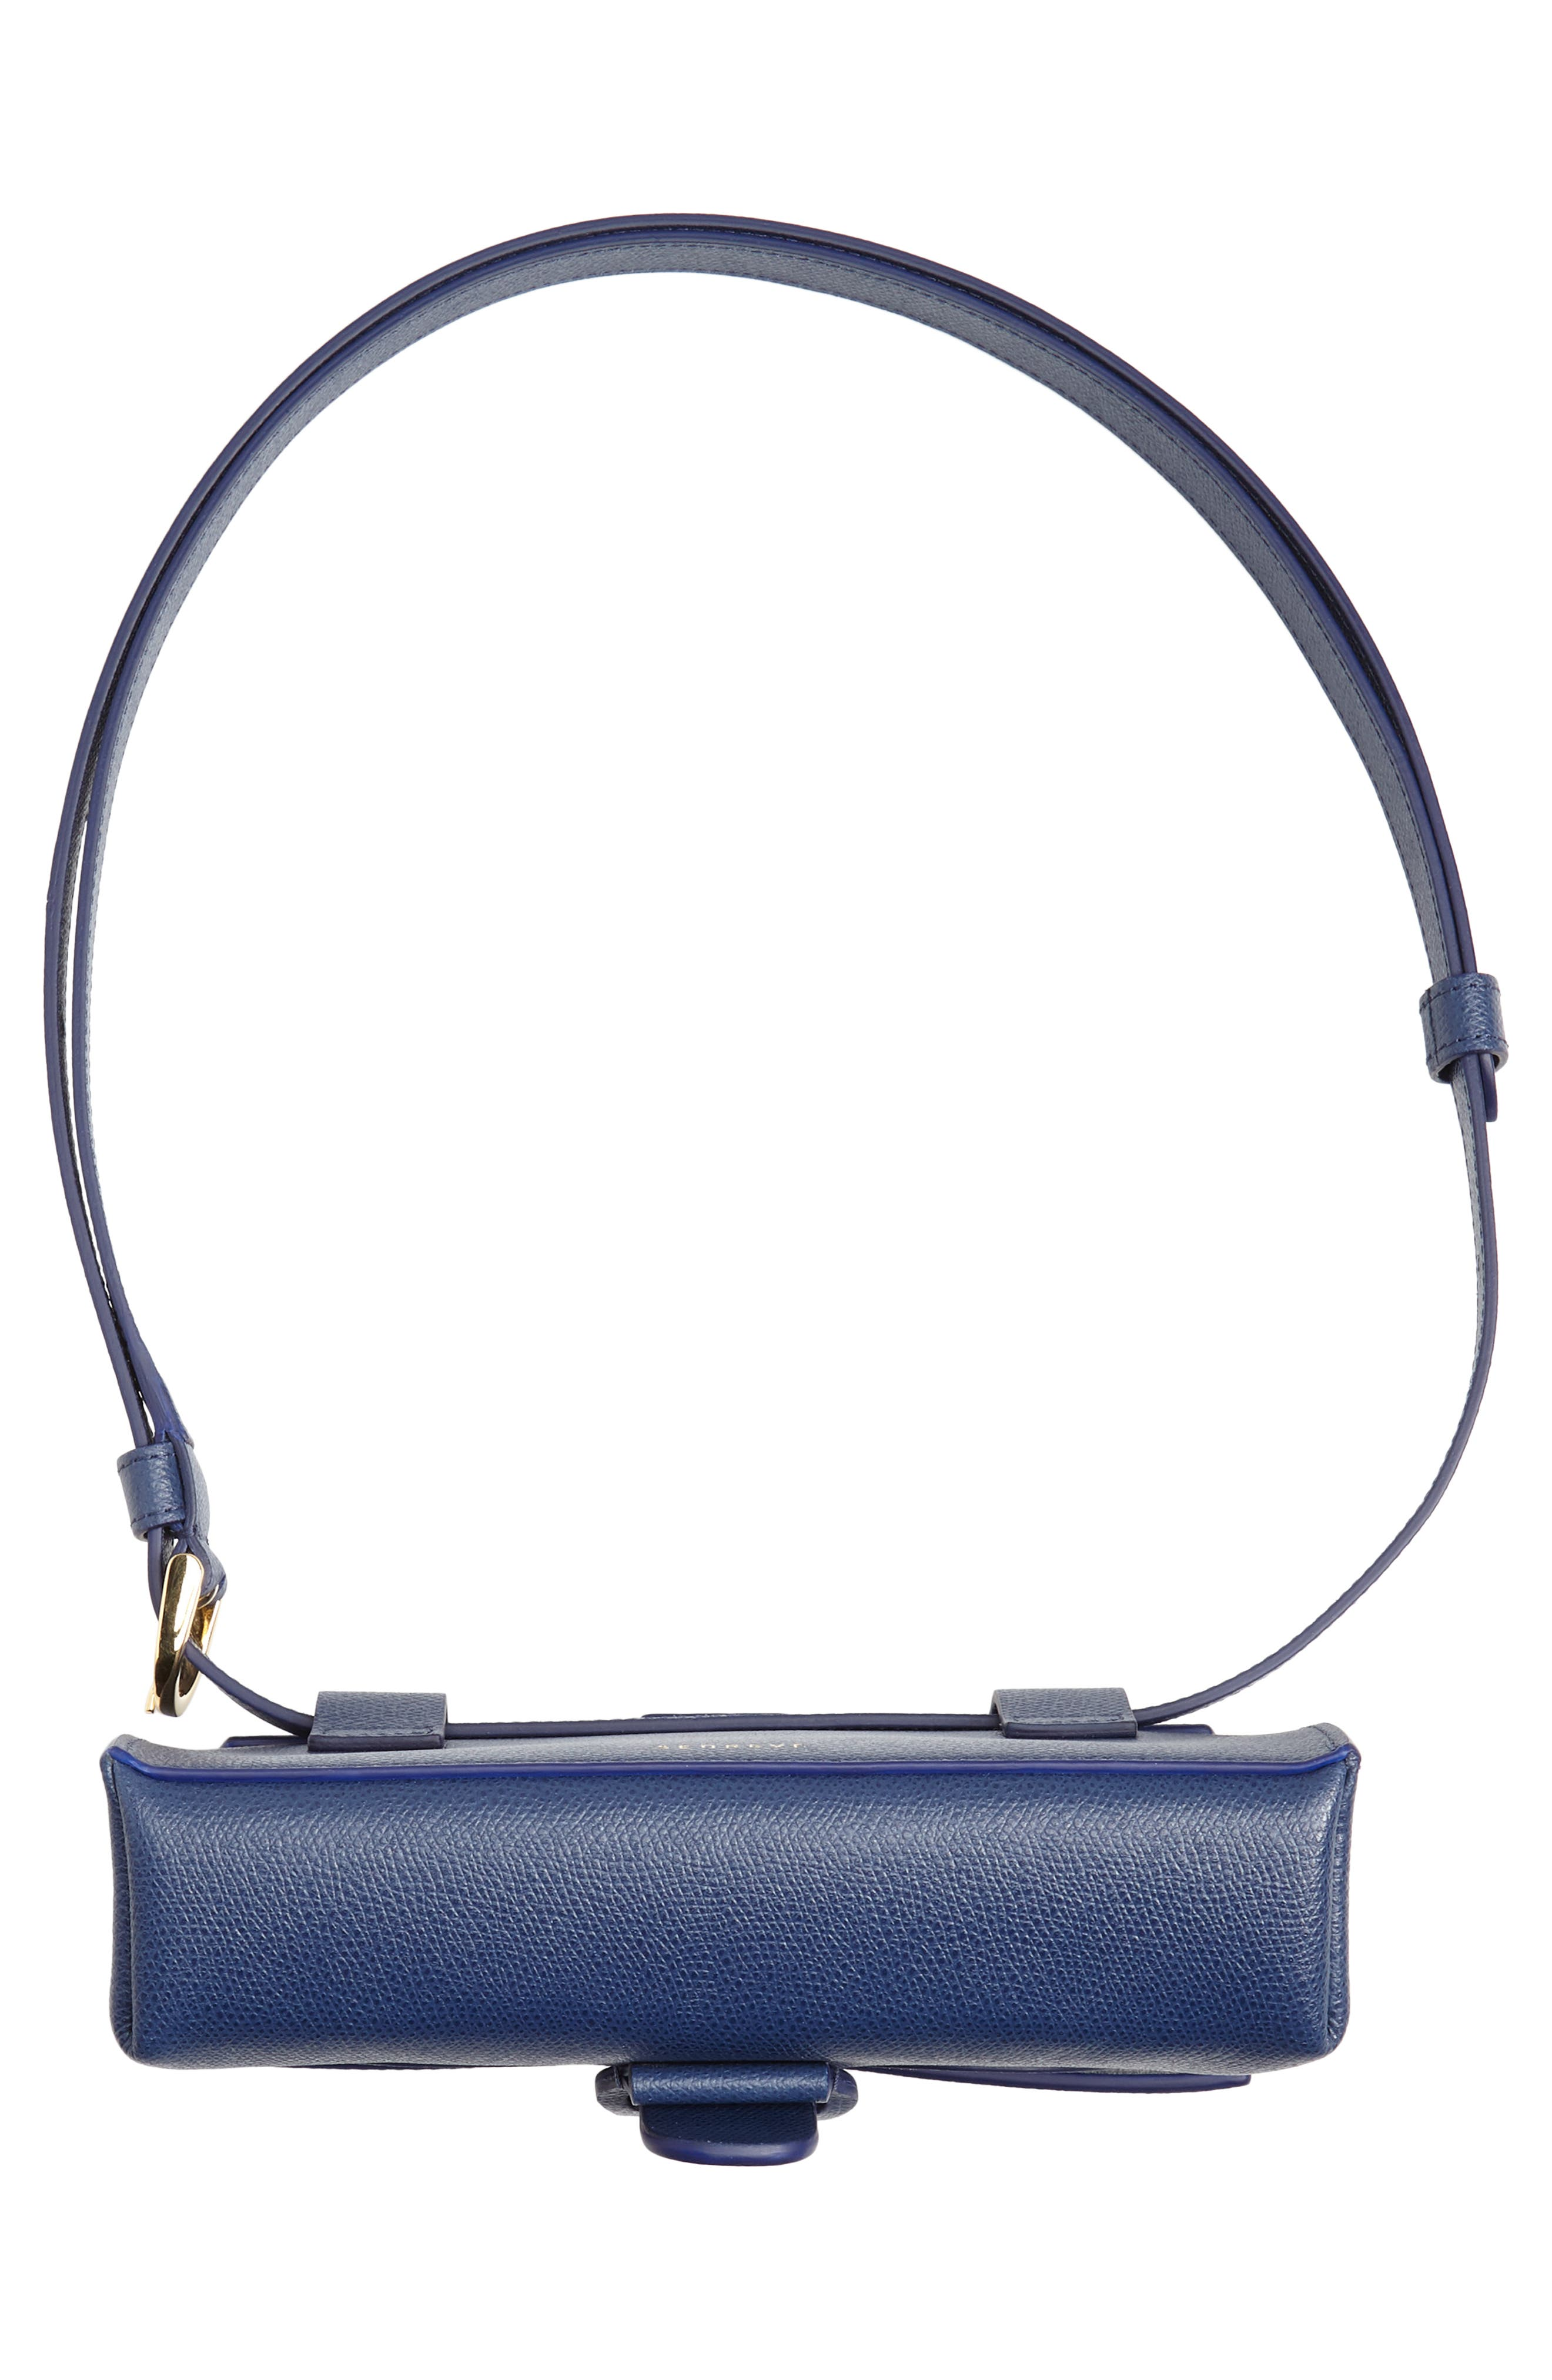 Aria Pebbled Leather Belt Bag,                             Alternate thumbnail 7, color,                             400